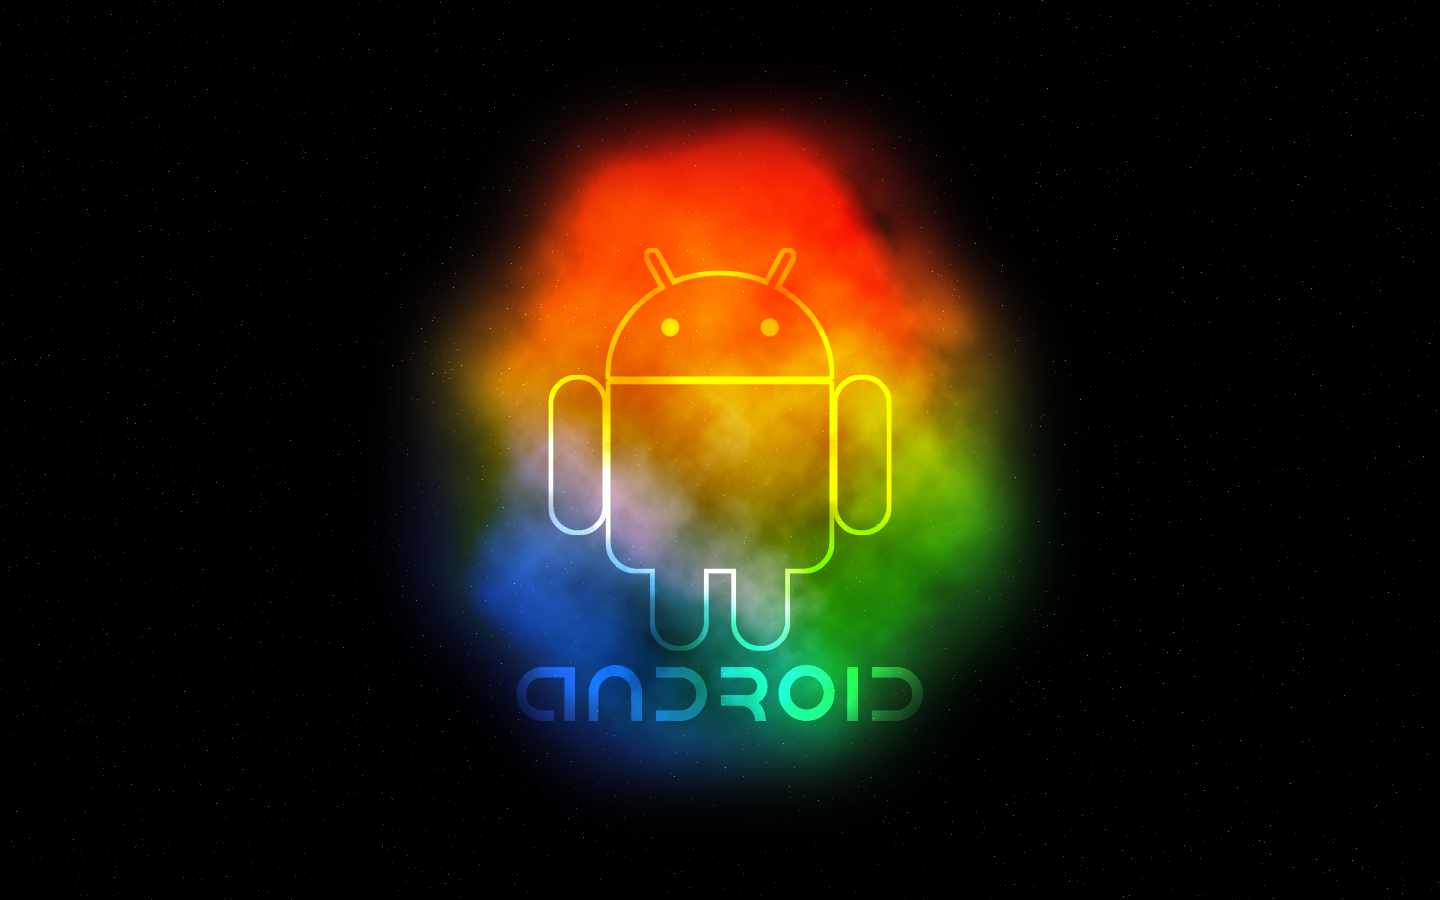 Android Wallpaper By Lucidfusion On Dev ドロイドくん Bugdroid